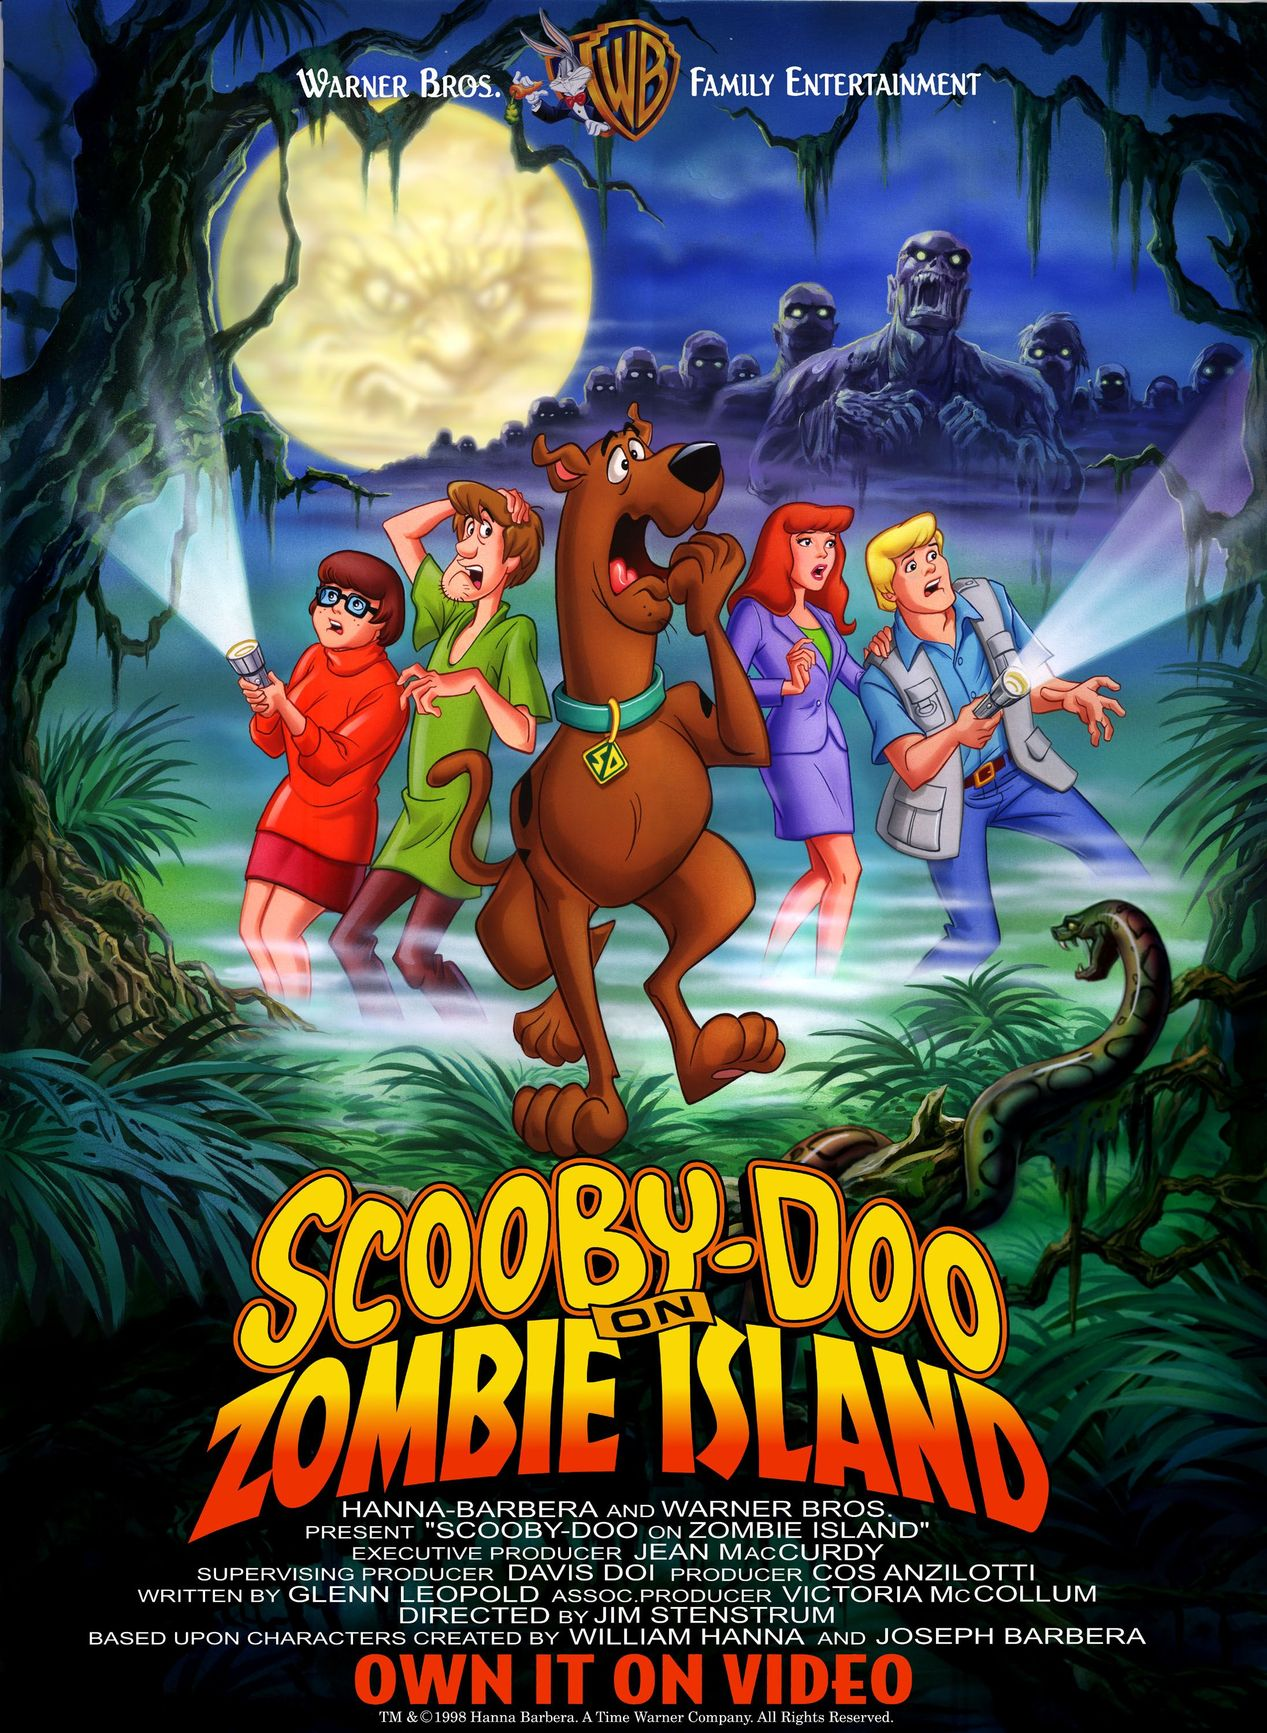 Scooby doo on zombie island -